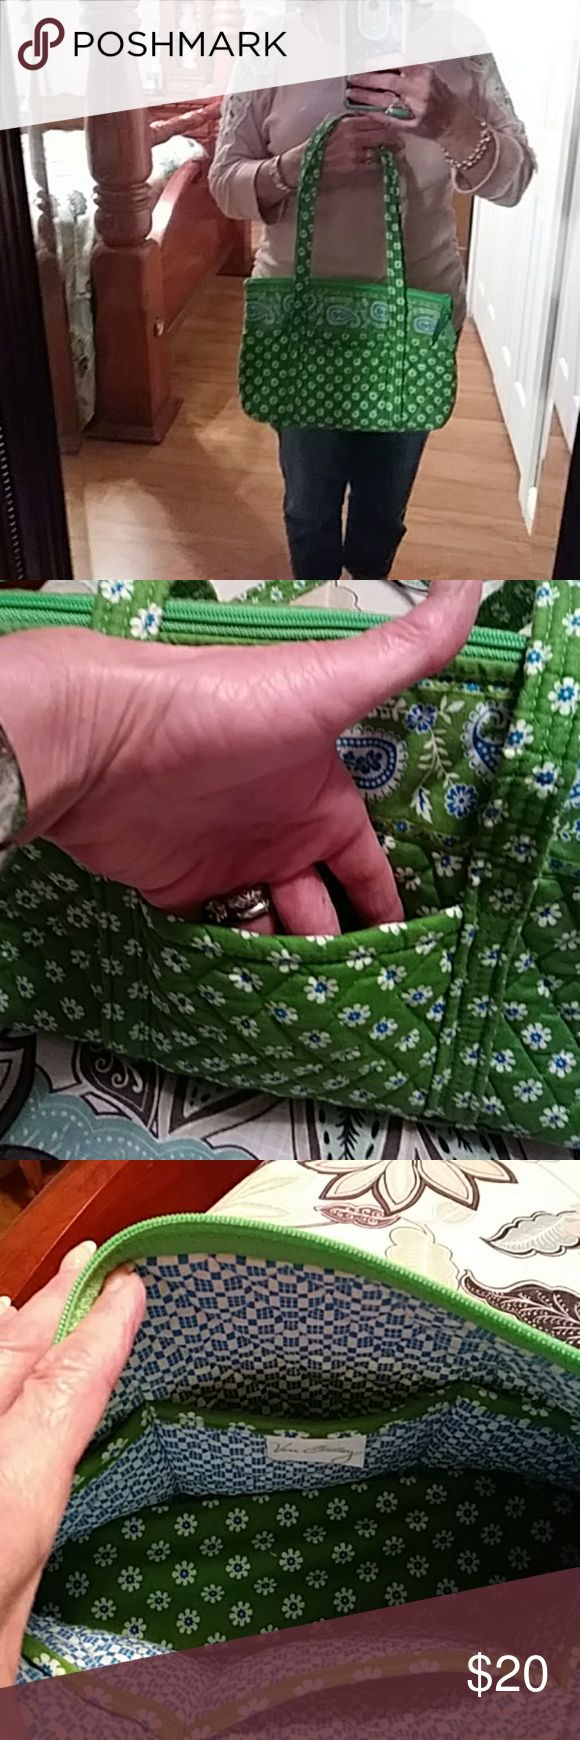 Nwot Vera Bradley purse Green with blue Paisley's and blue and white flowers. Never been used. Vera Bradley Bags Hobos